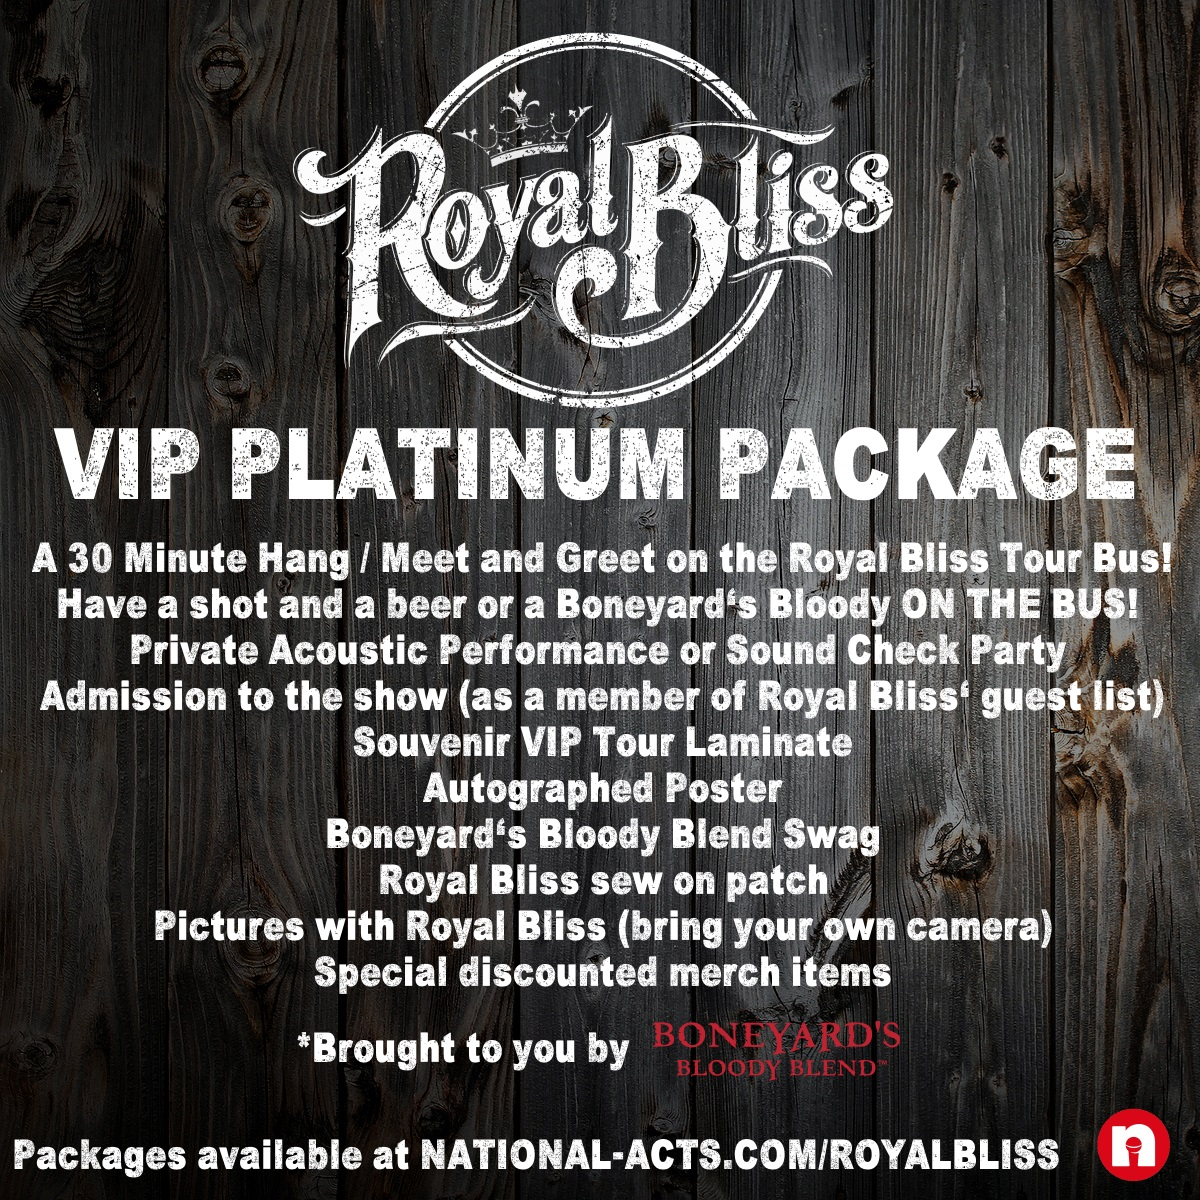 Tickets for royal bliss vip spokane wa in spokane from national platinum bus meet and greet package includes a 30 minute hang meet and greet on the royal bliss tour bus have a shot and a beer or a boneyards bloody kristyandbryce Images